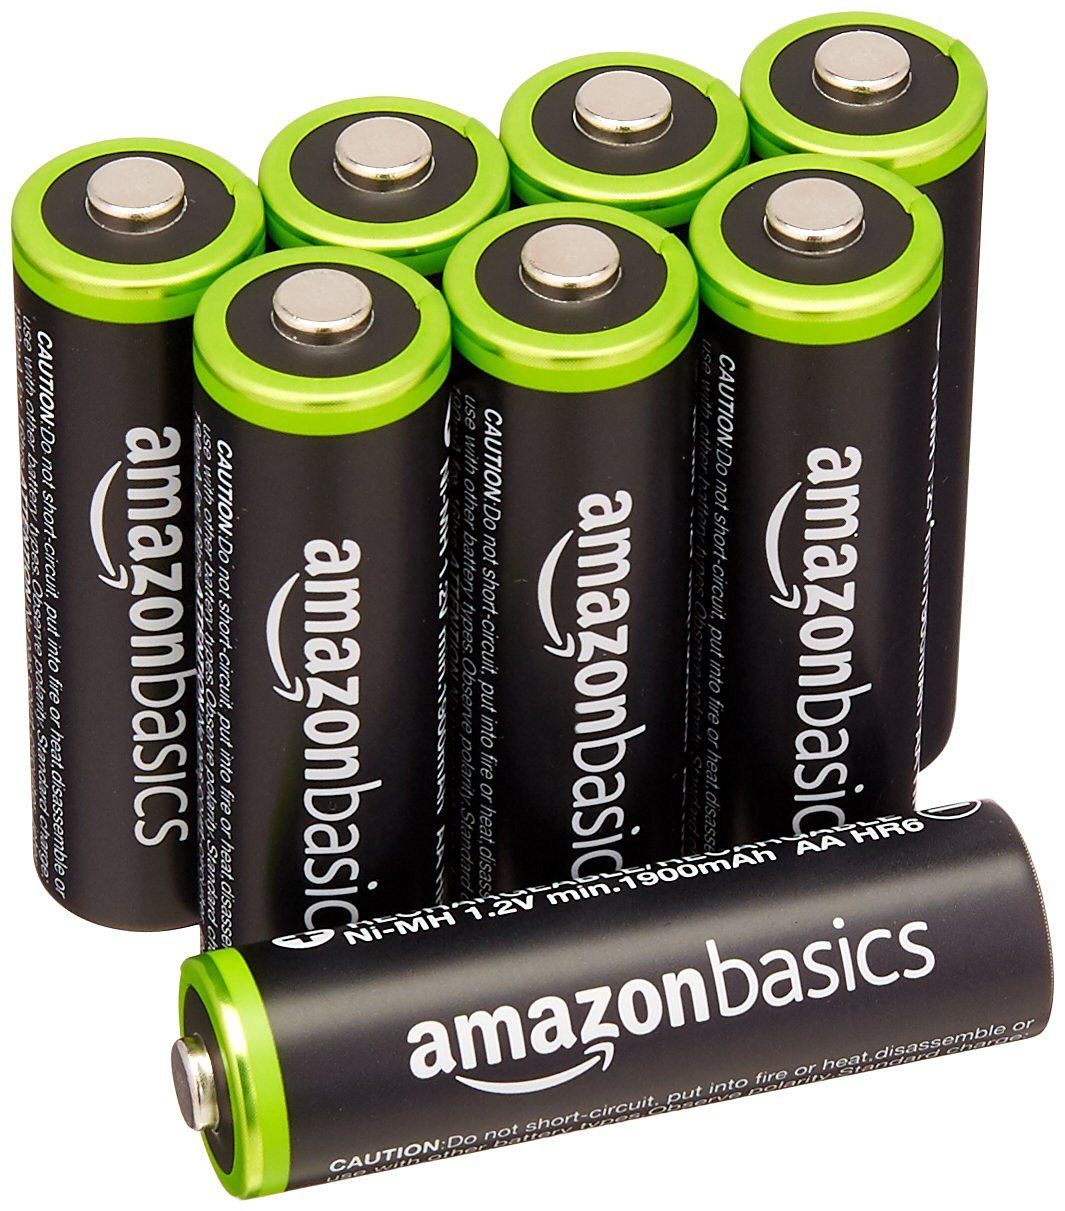 Amazon Com Amazonbasics Aa Rechargeable Batteries 8 Pack Pre Charged Packaging May Vary Home Au Rechargeable Batteries Charge Battery Charger Accessories